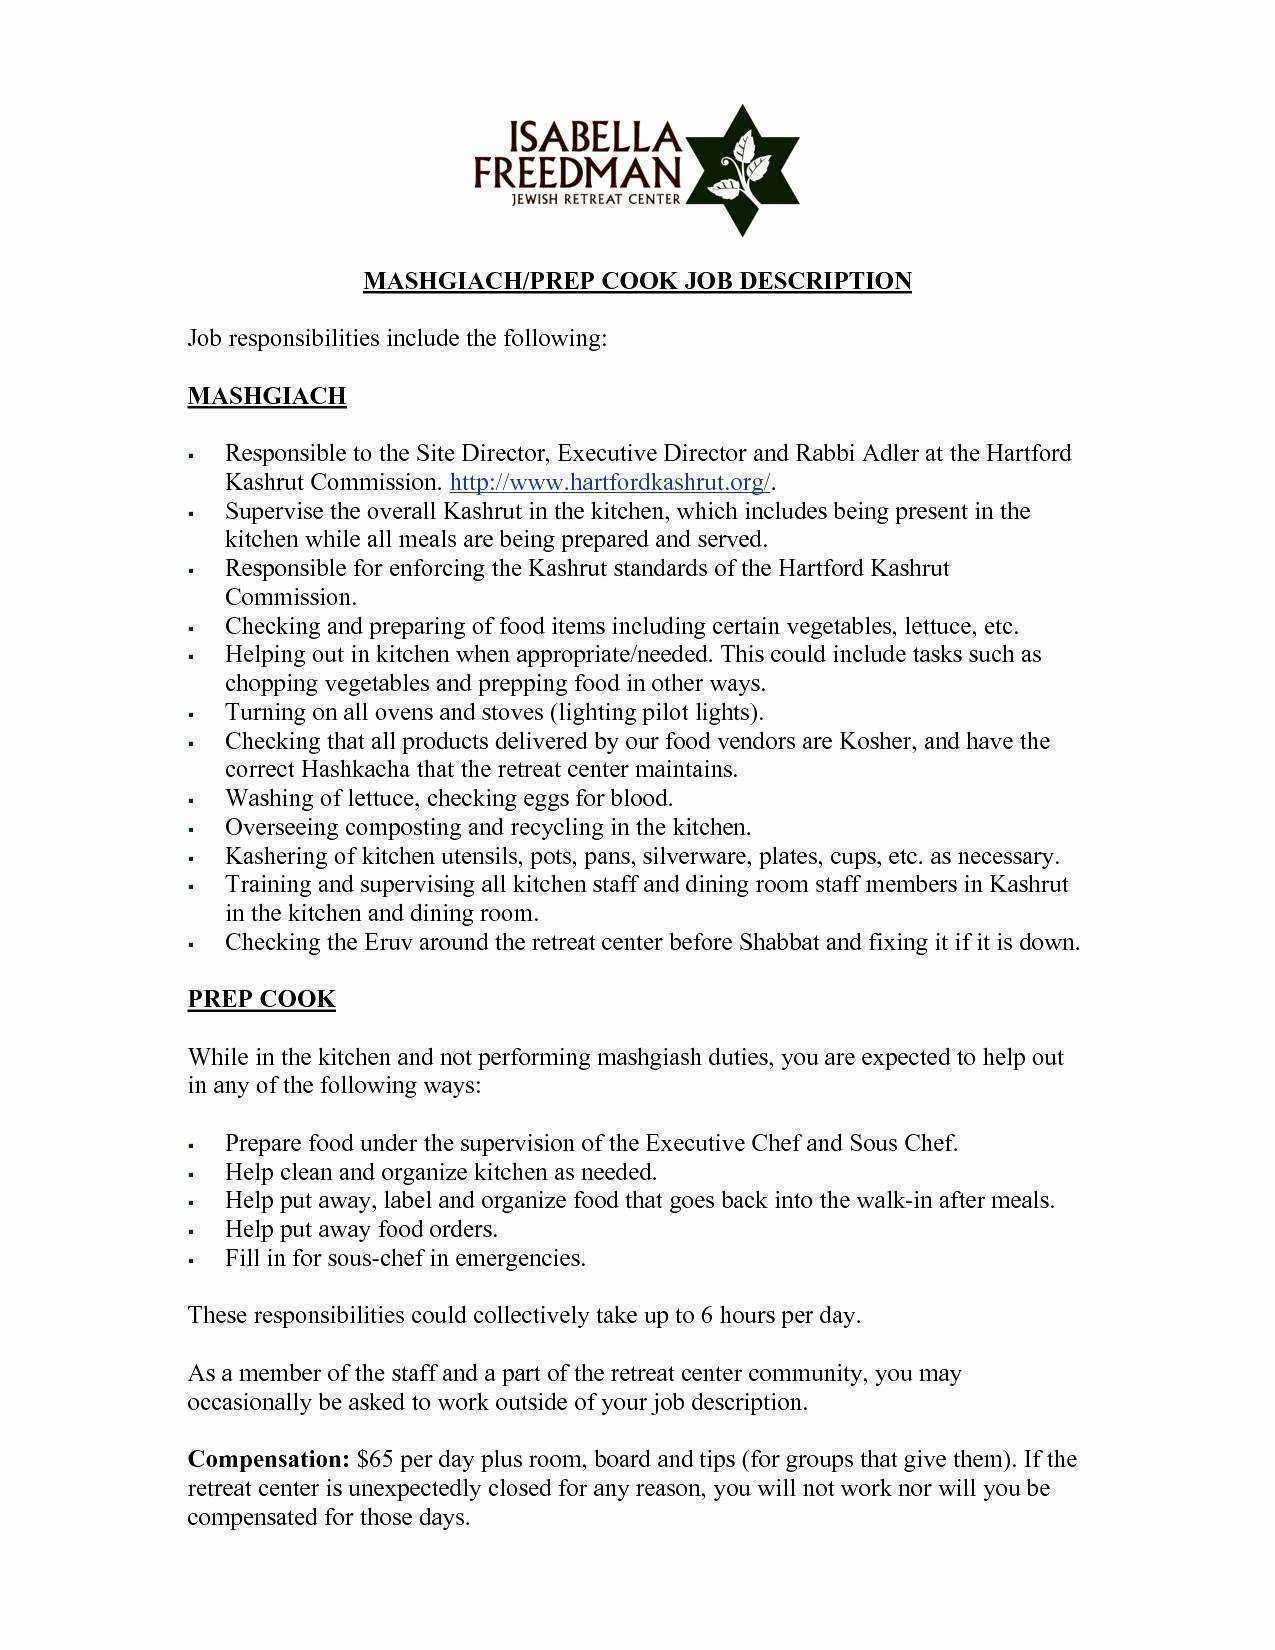 Administrative Assistant Cover Letters Administrative Coordinator Cover Letter Free Sample Administrative